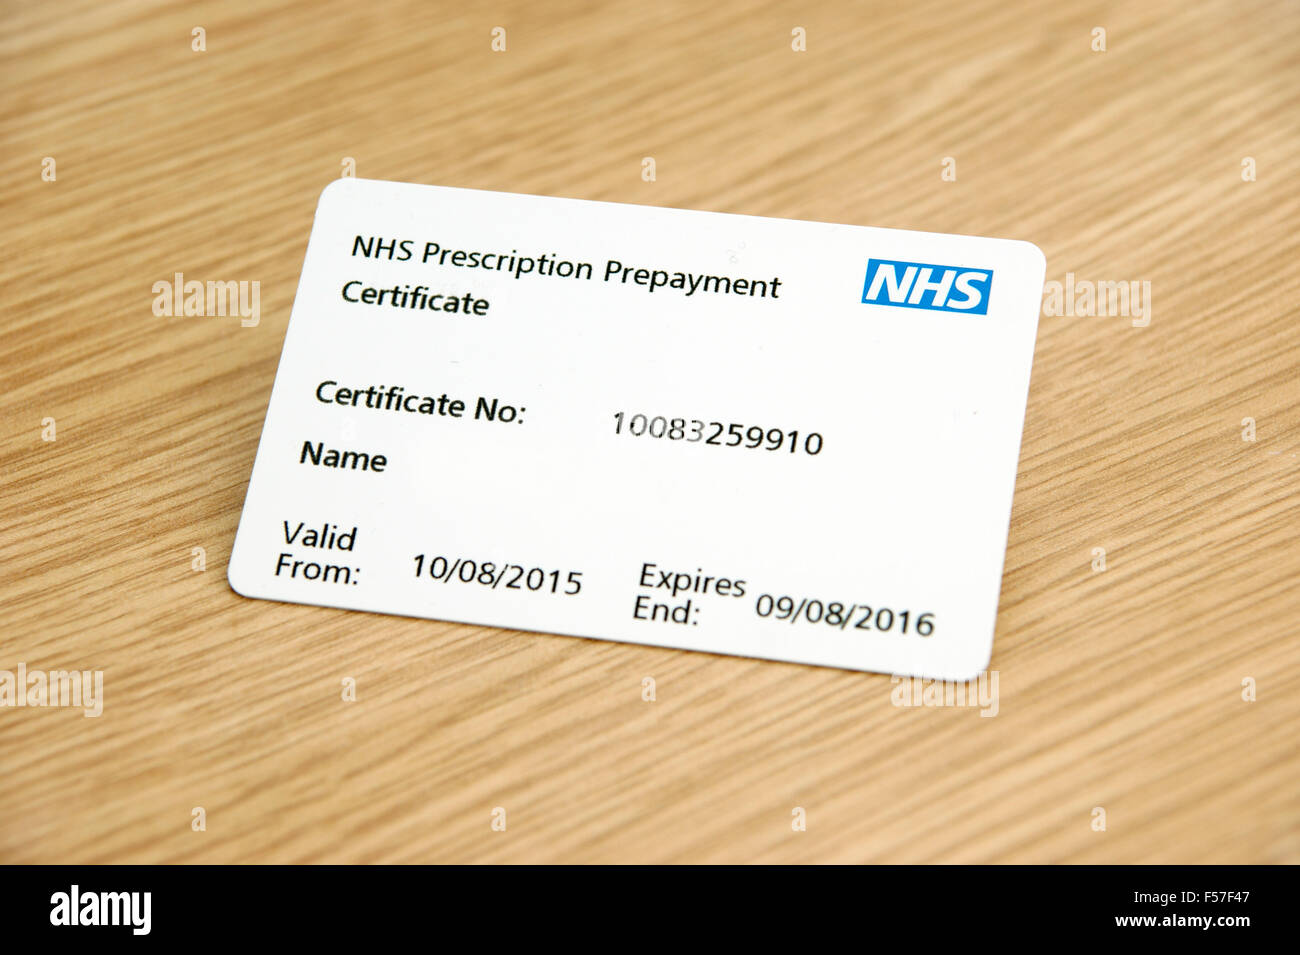 NHS prescription prepayment certificate (useful when lots of medication is taken eg 2 or more scripts a month) - Stock Image